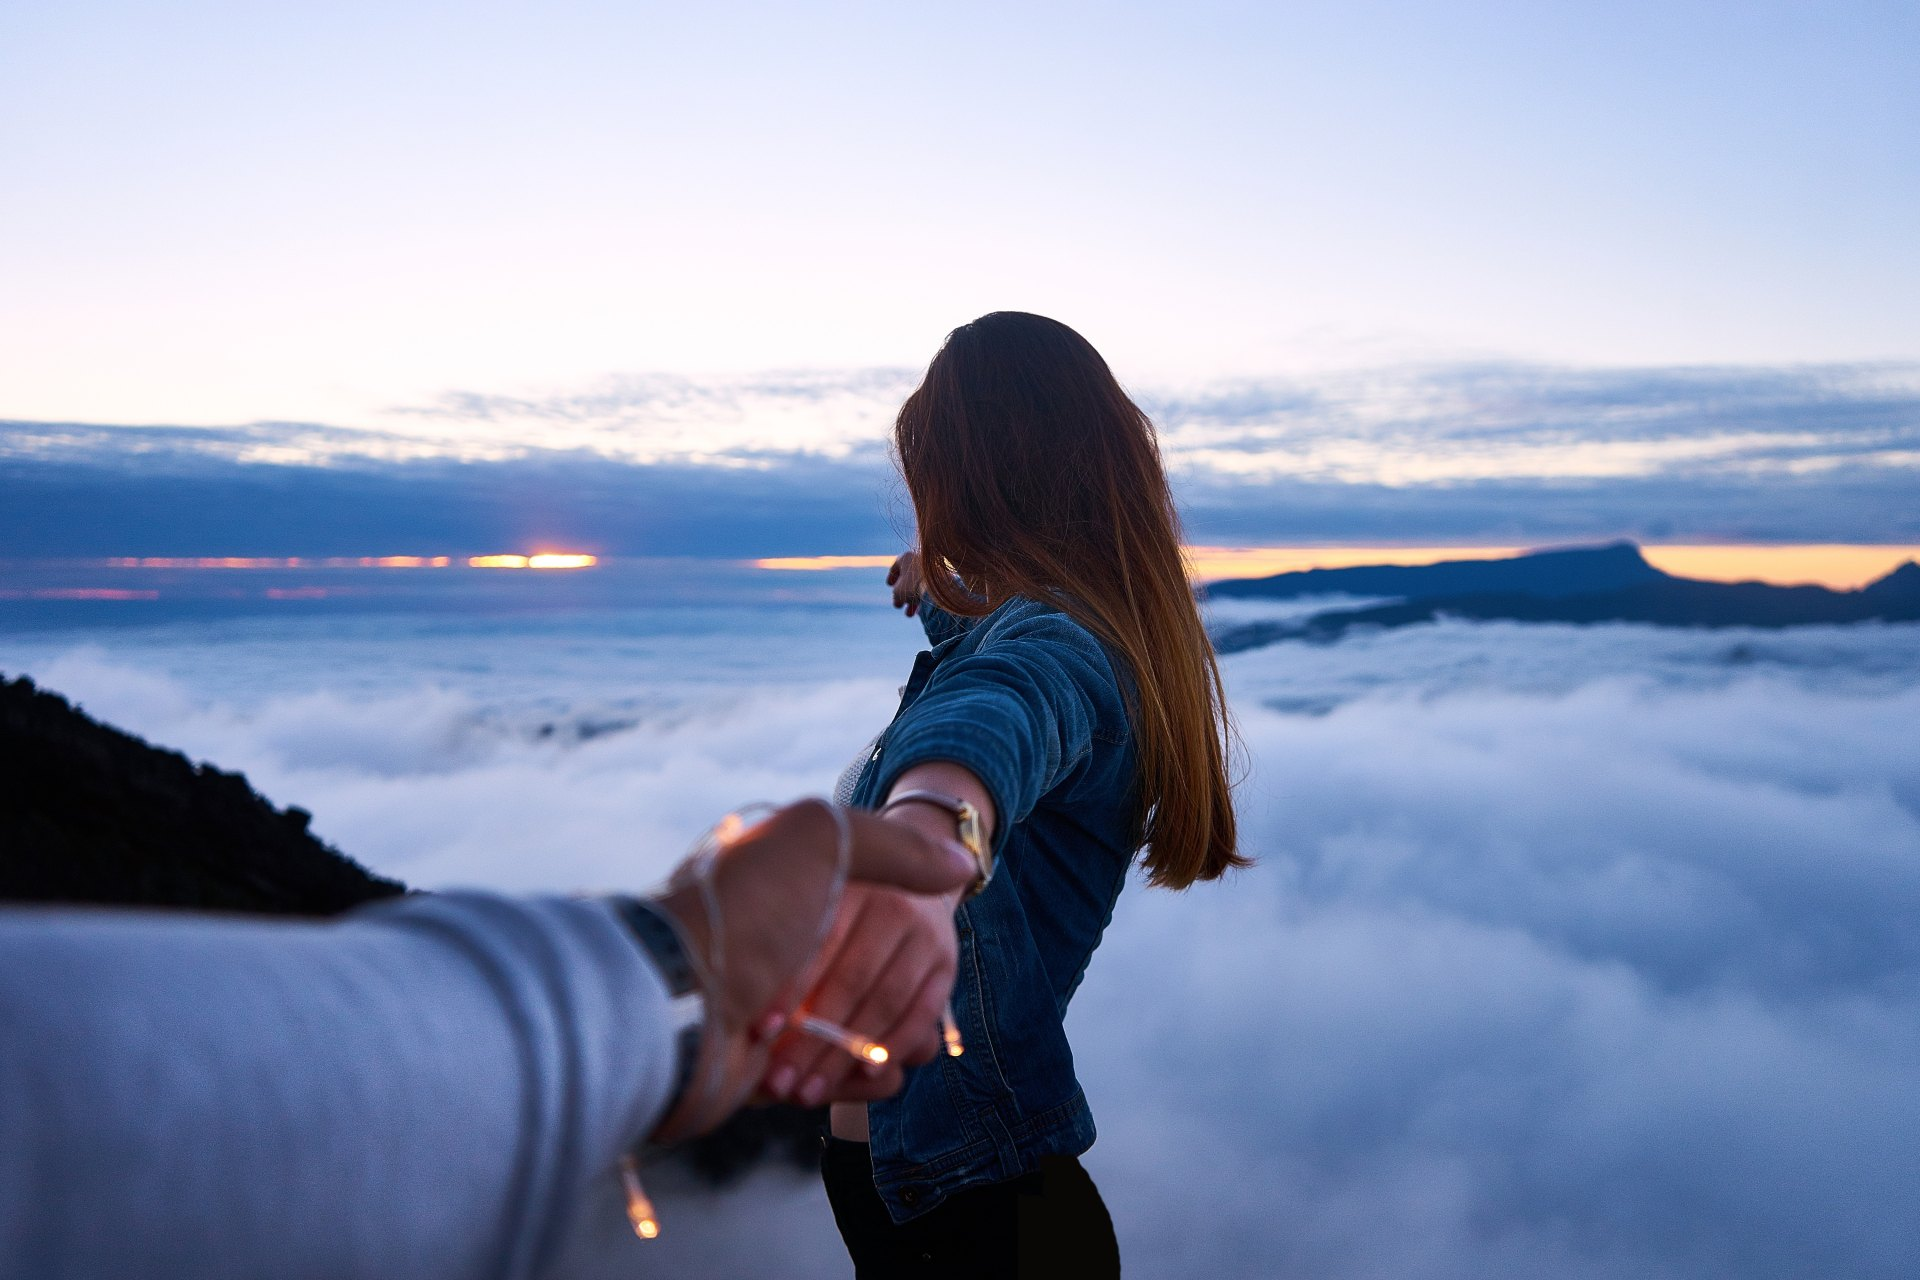 How To Love The Girl Who Got Out Of A Toxic Relationship